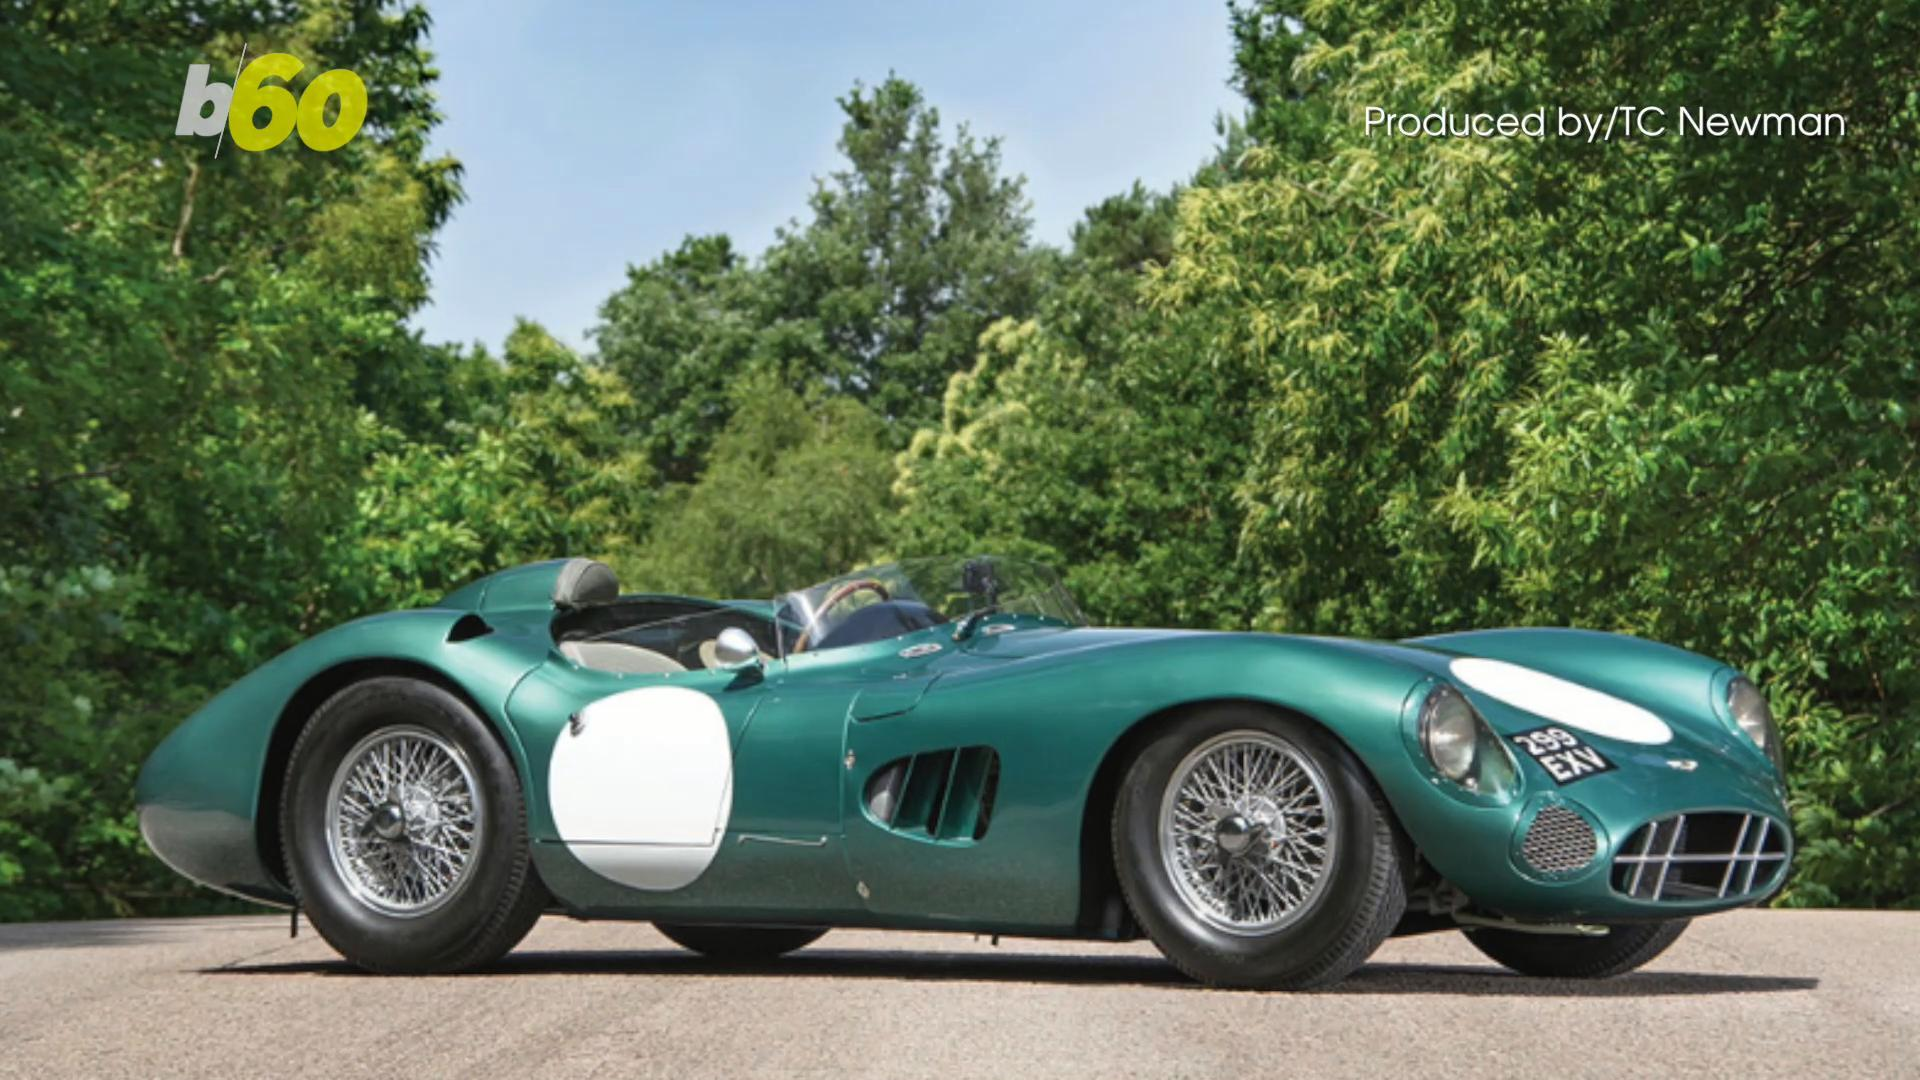 At $22.6 Million, This Car Has Just Become The Most Expensive British Car Ever Auctioned Off